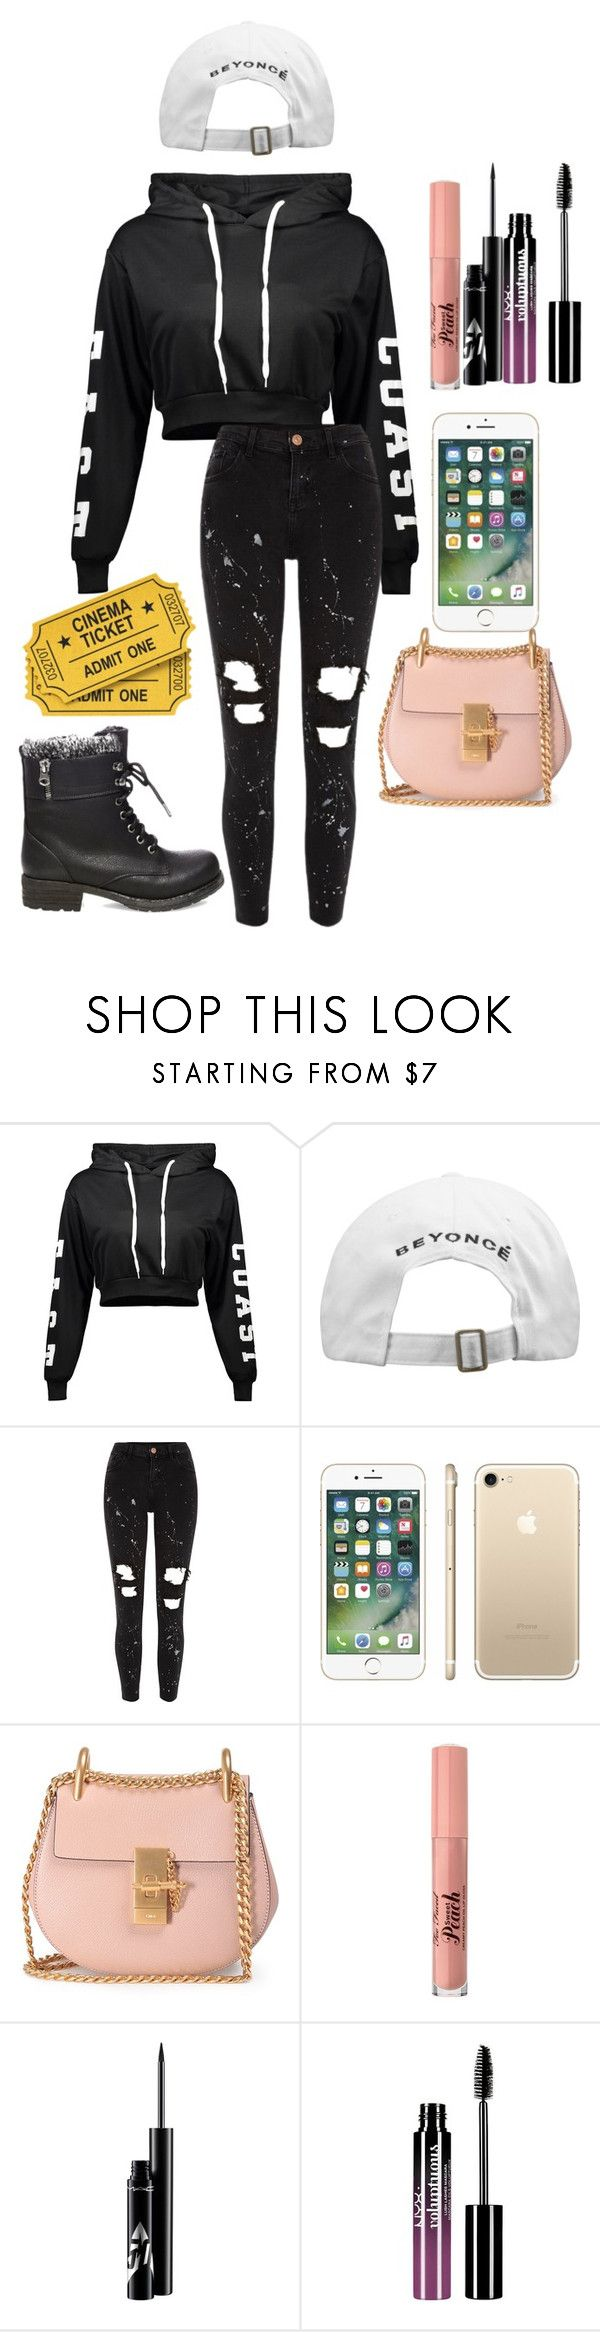 """Movie Theater"" by marythecheery ❤ liked on Polyvore featuring River Island, Chloé, Too Faced Cosmetics, Charlotte Russe and Steve Madden"